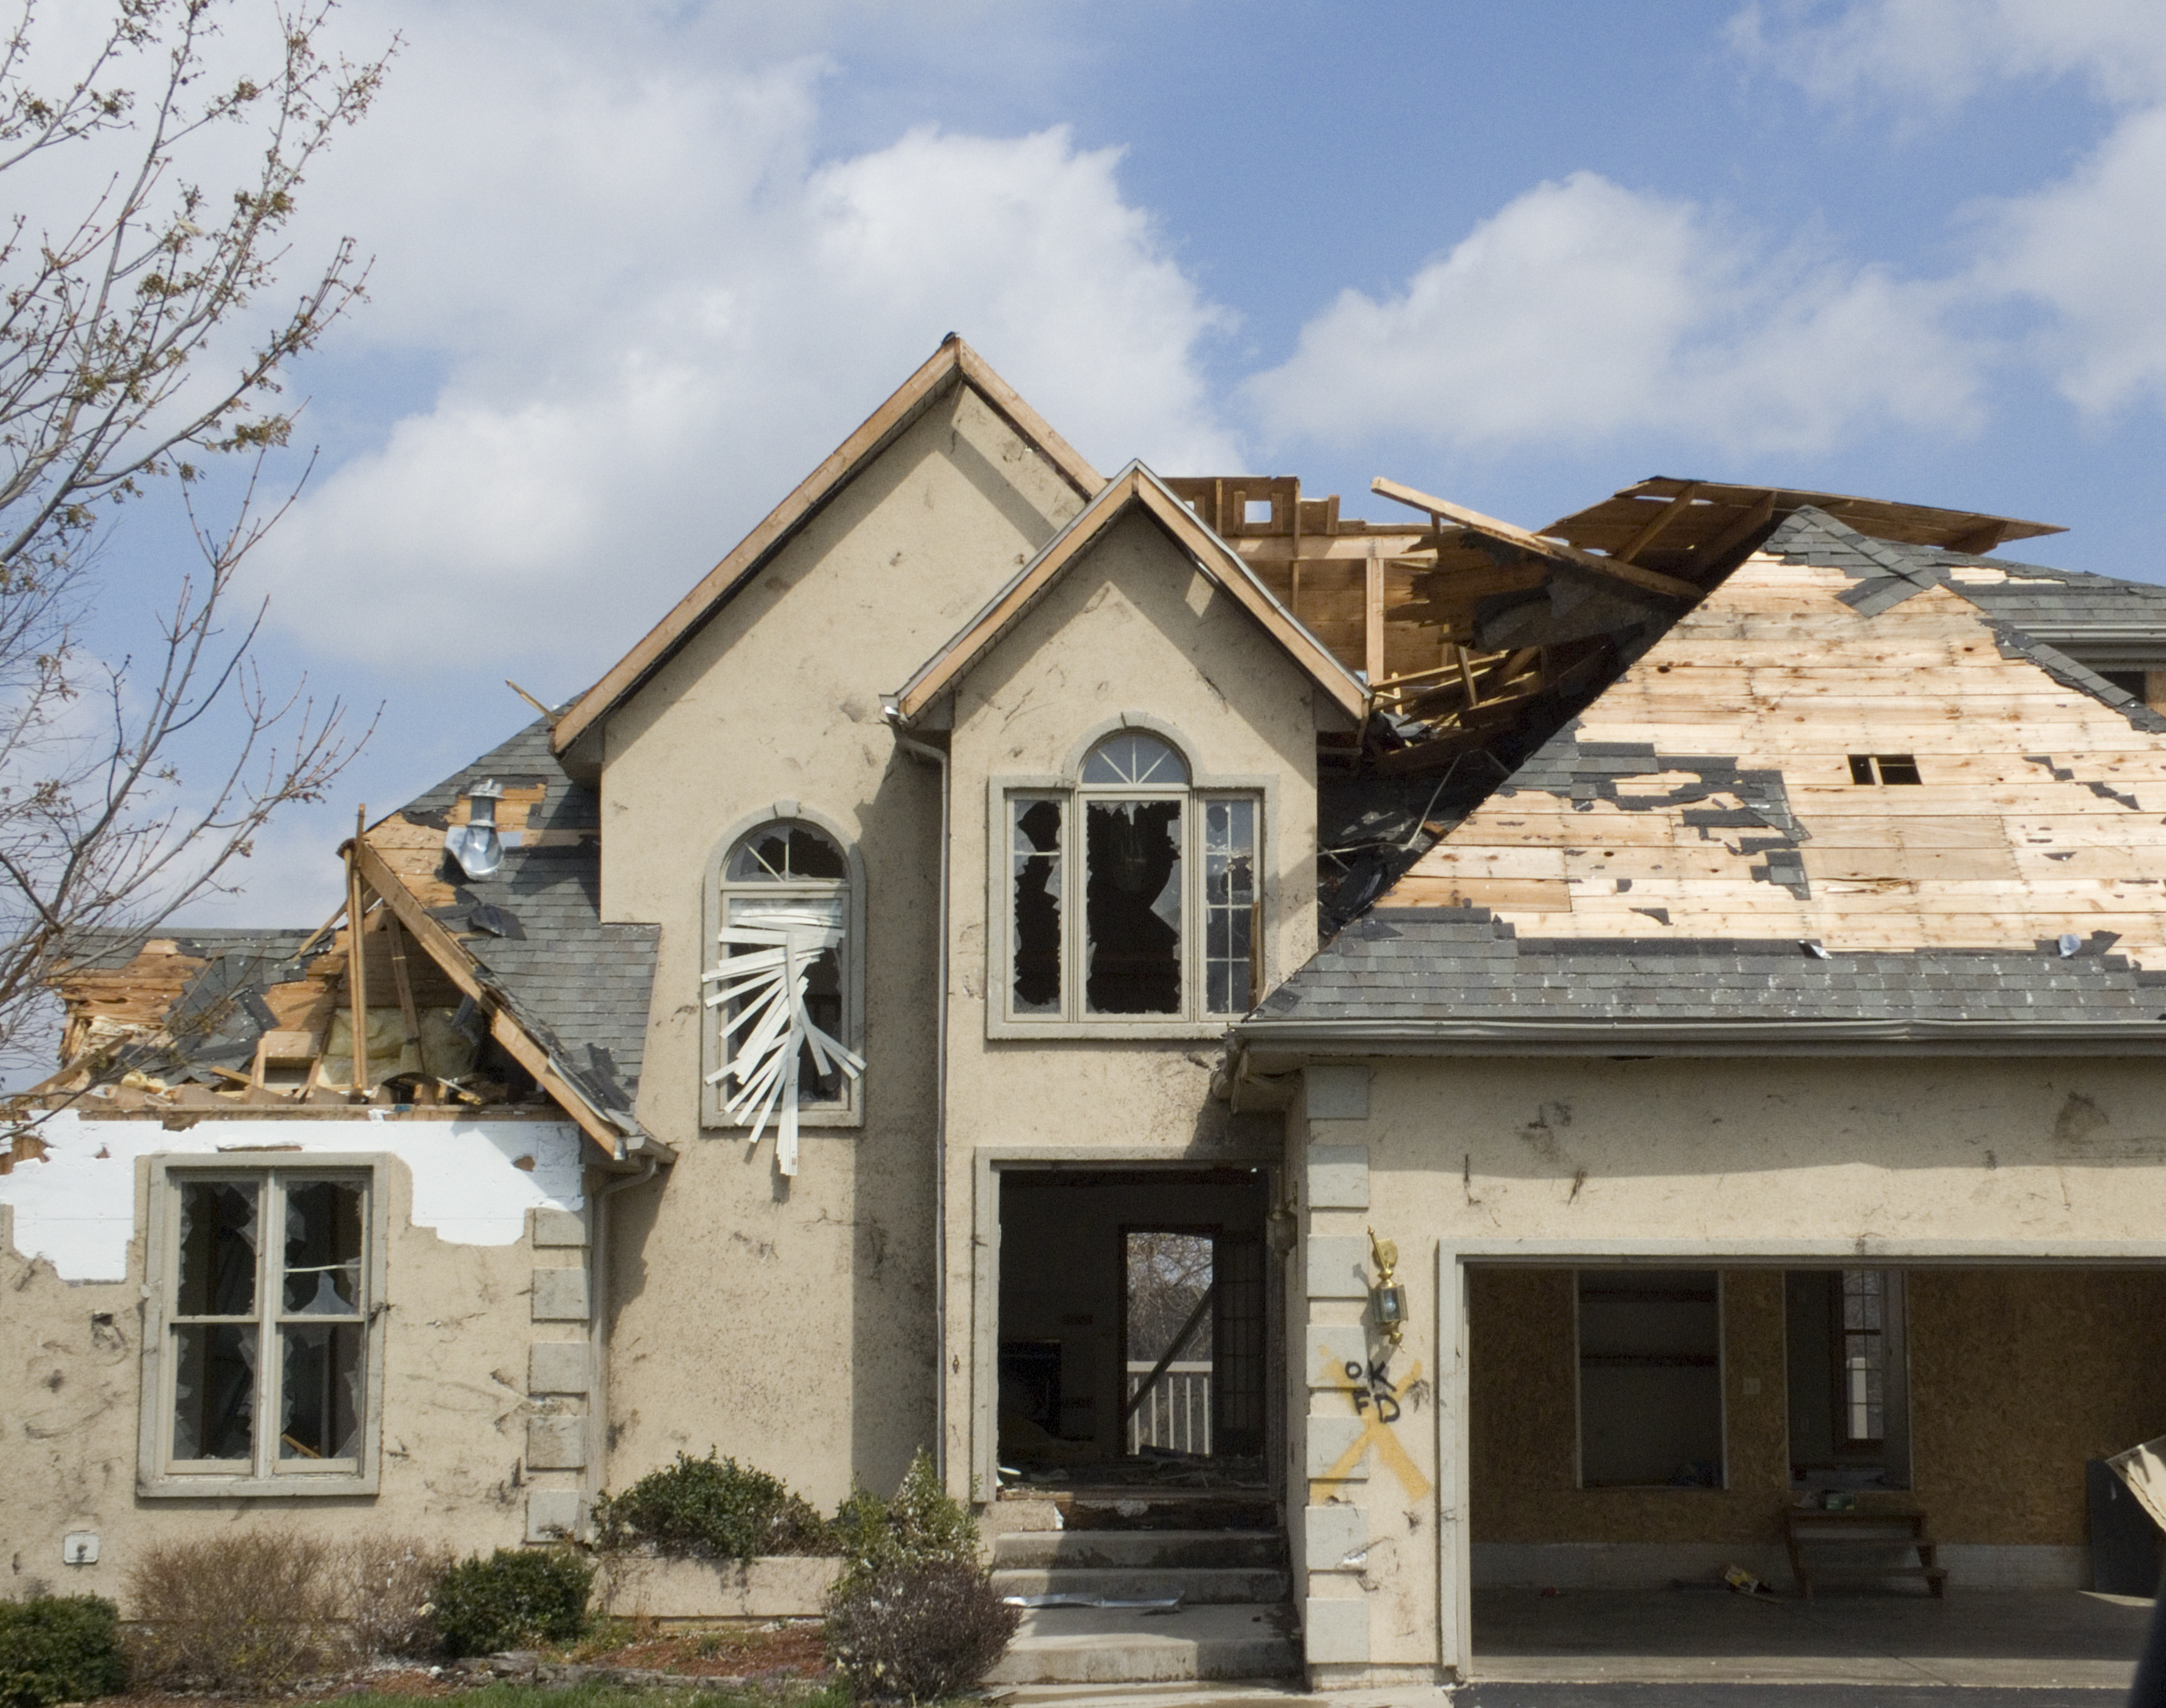 Wind damage to your home